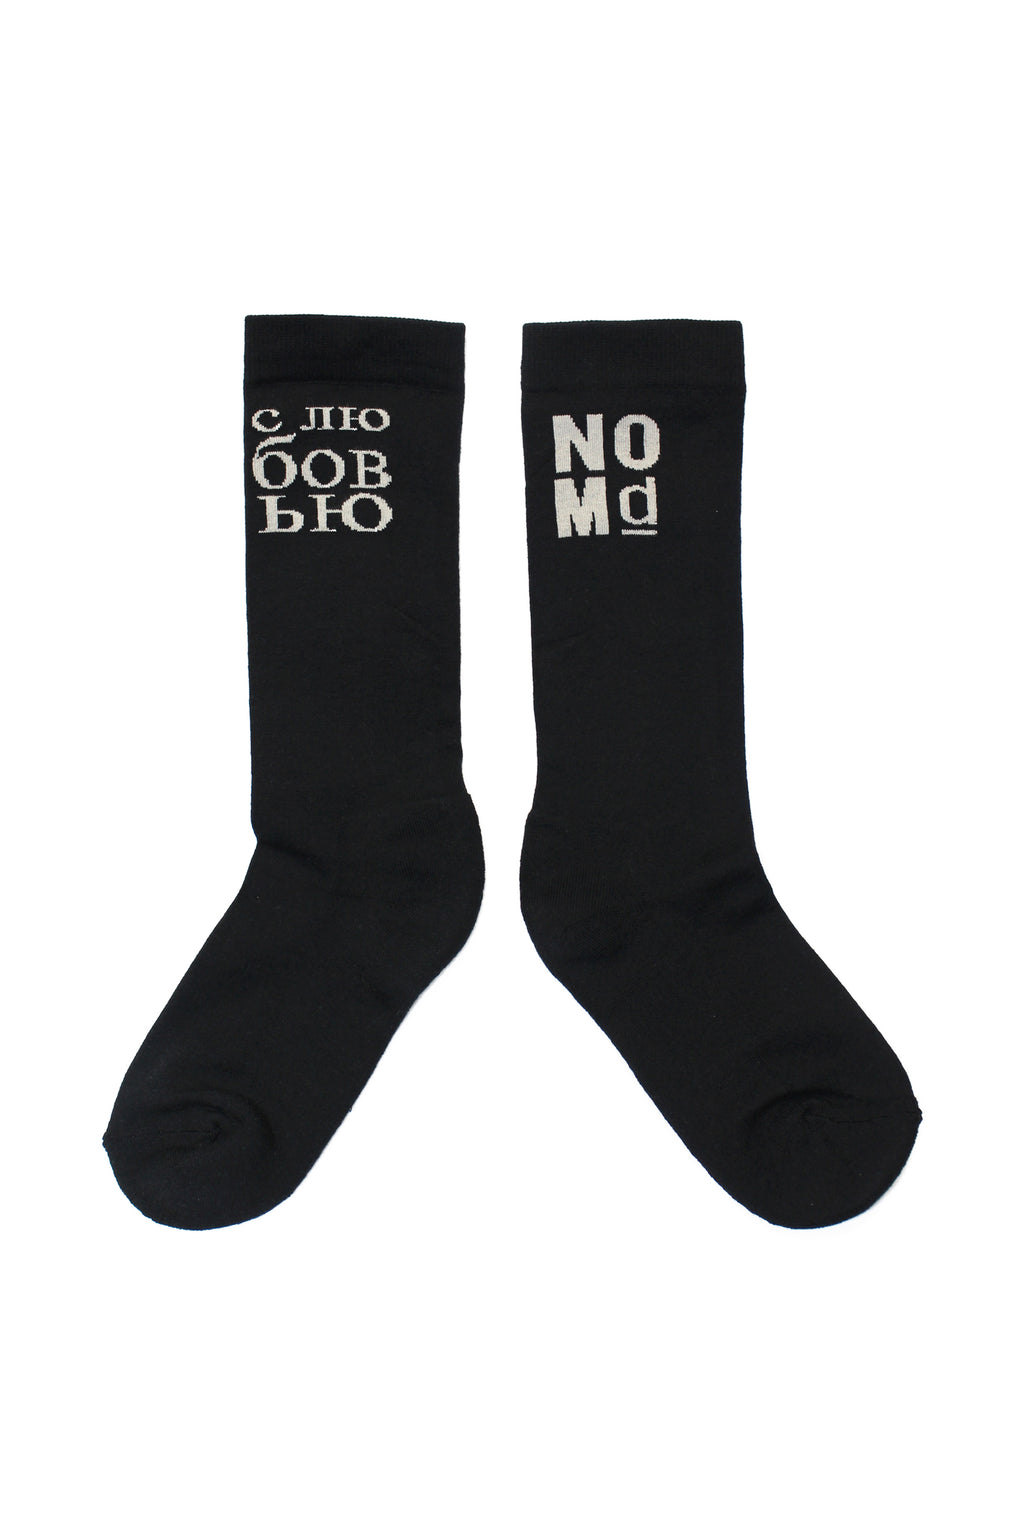 With Love Socks | Black